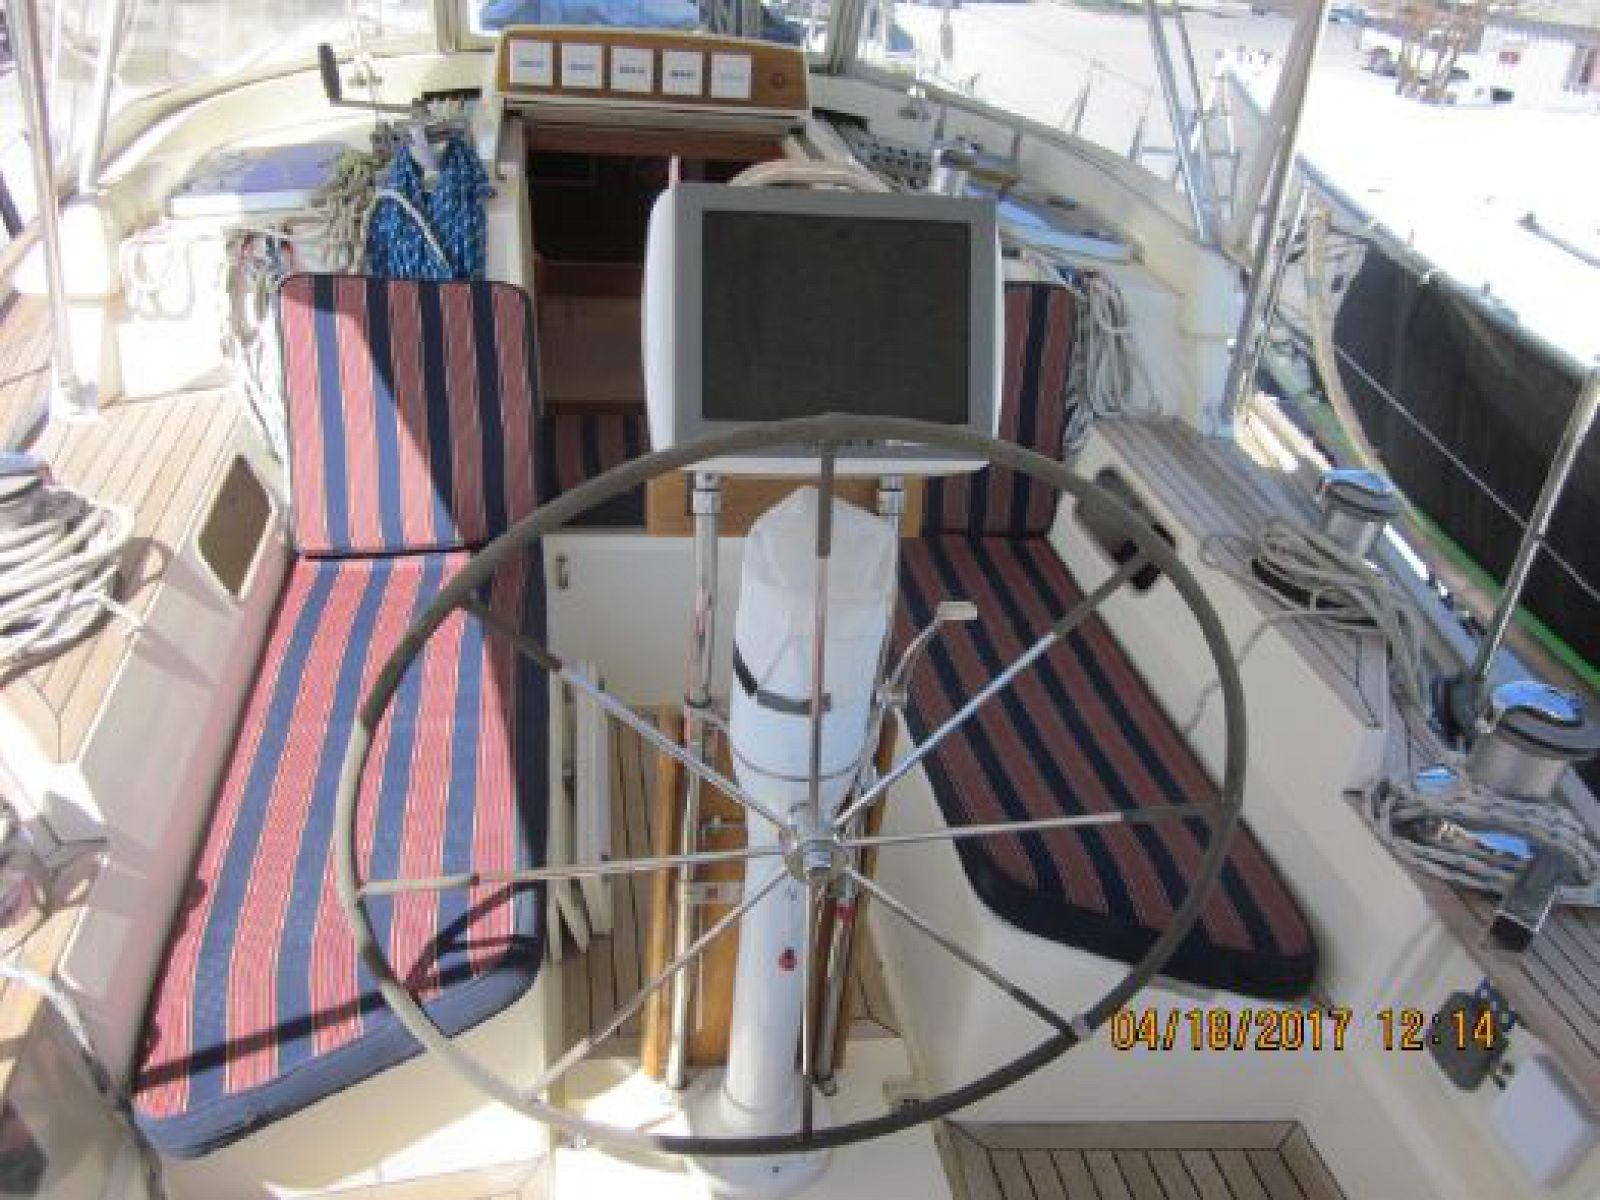 2000 Bowman Chuck Paine Annapolis, MD | David Walters Yachts